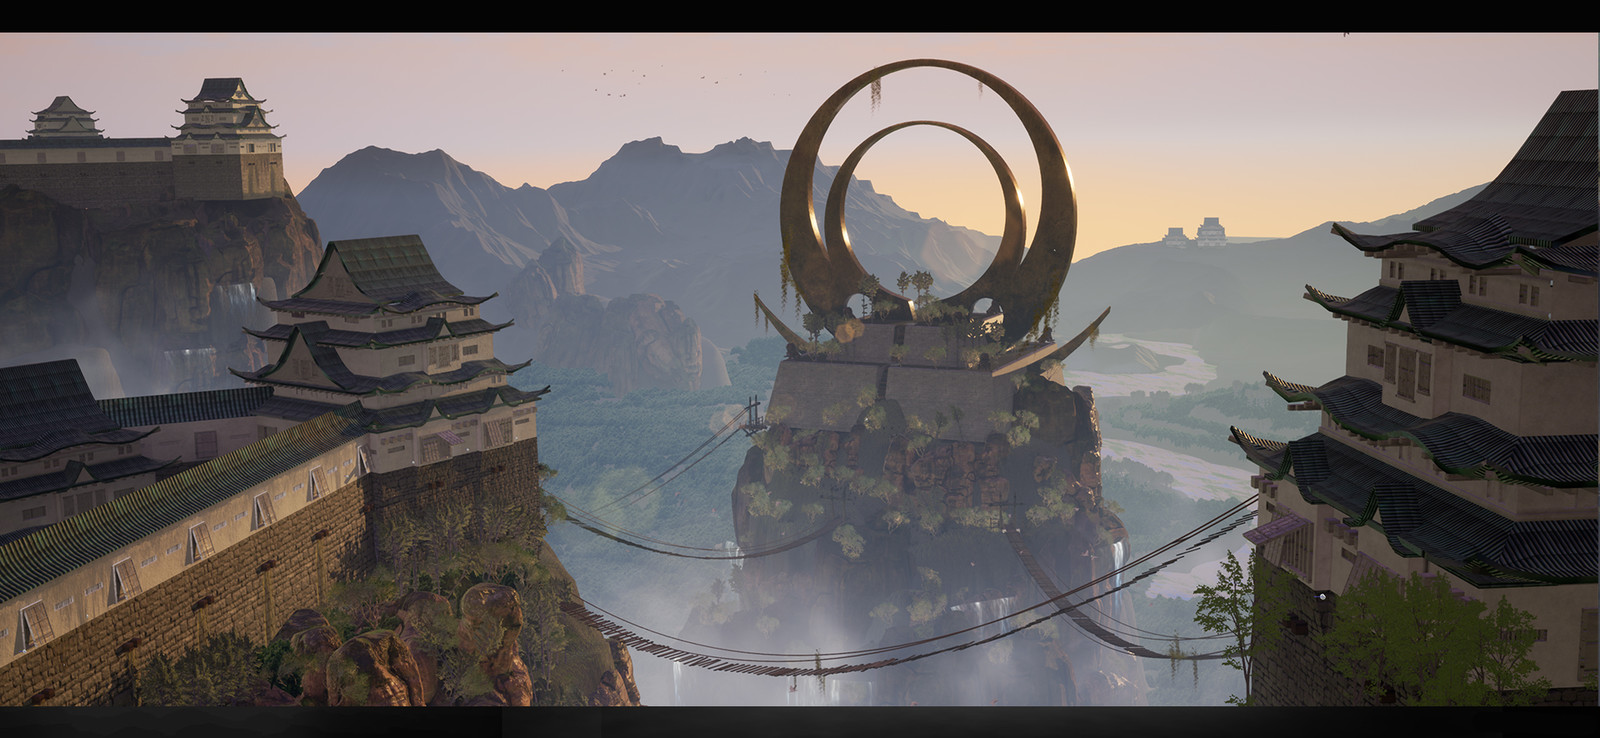 Feudal Japan: The Shogunate Game Environment/Level Art